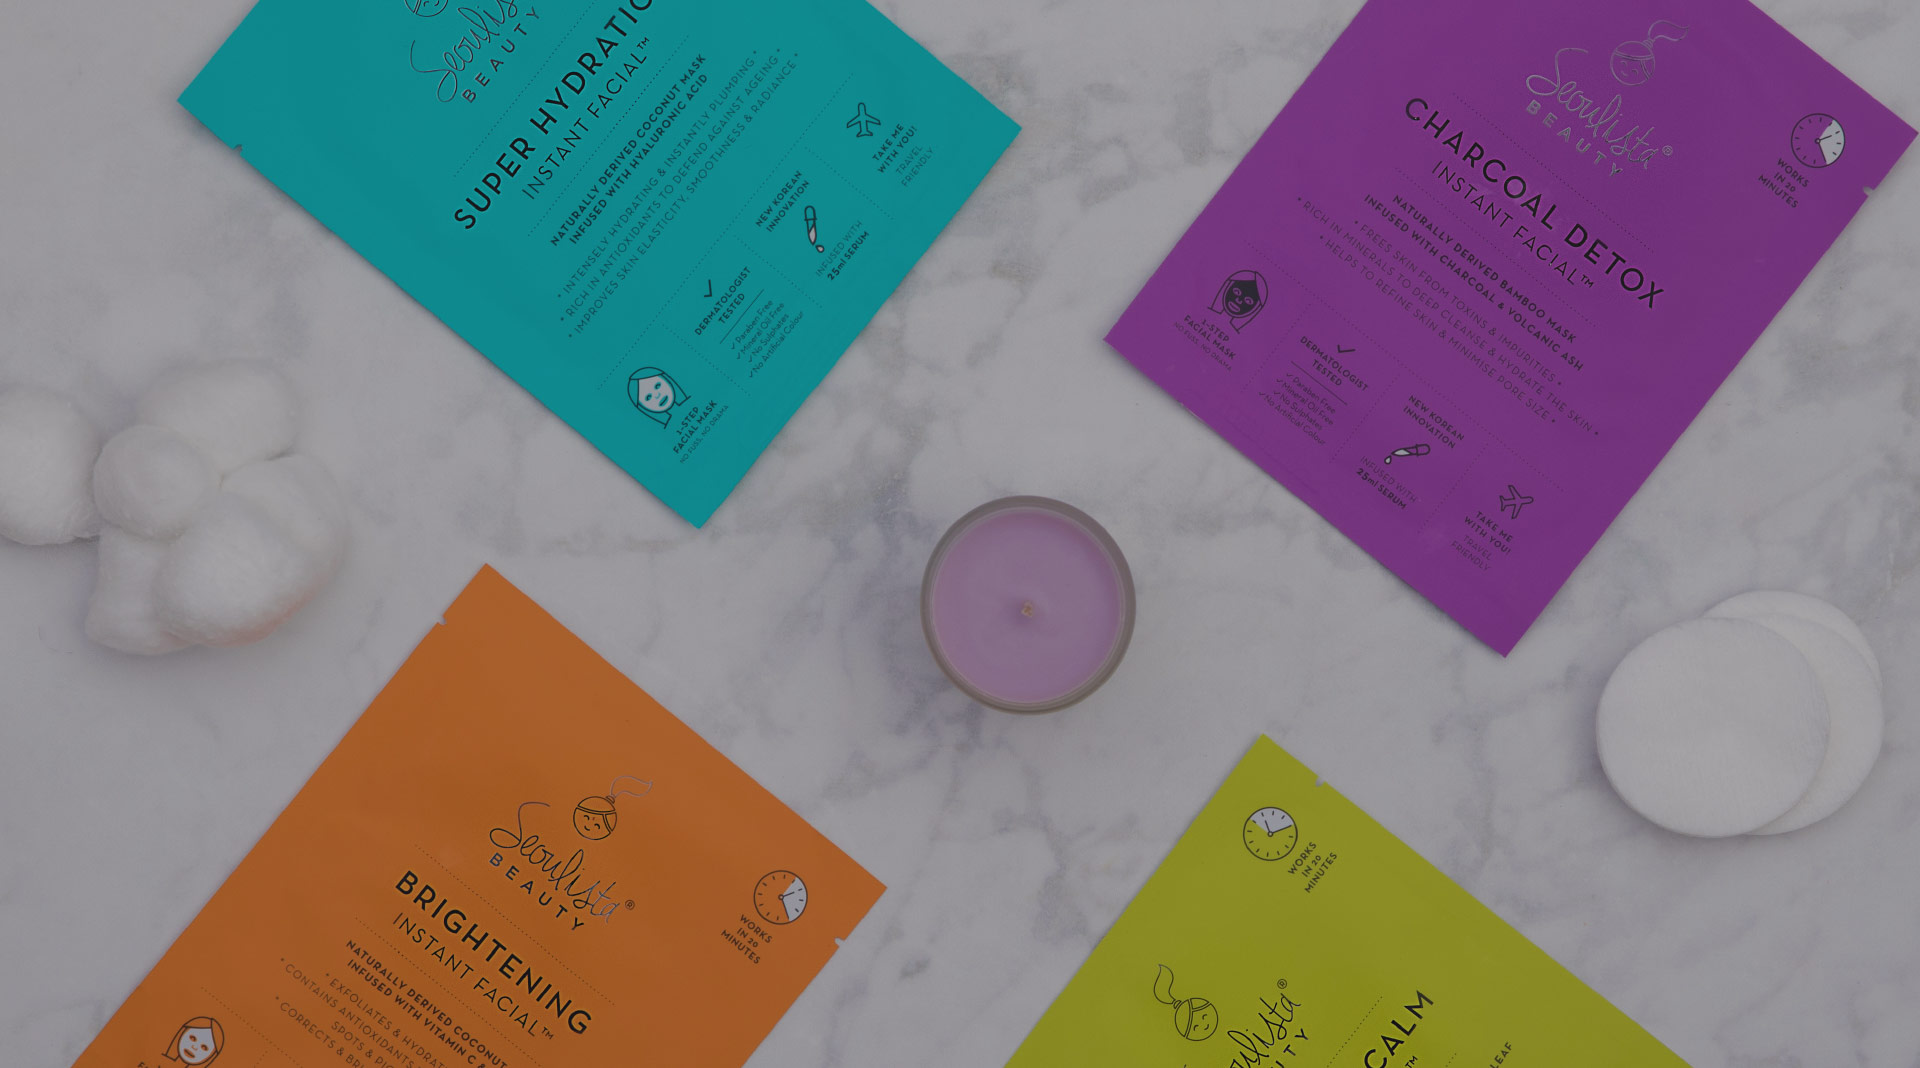 Brand identity, leaflet design and poster design for a beauty event